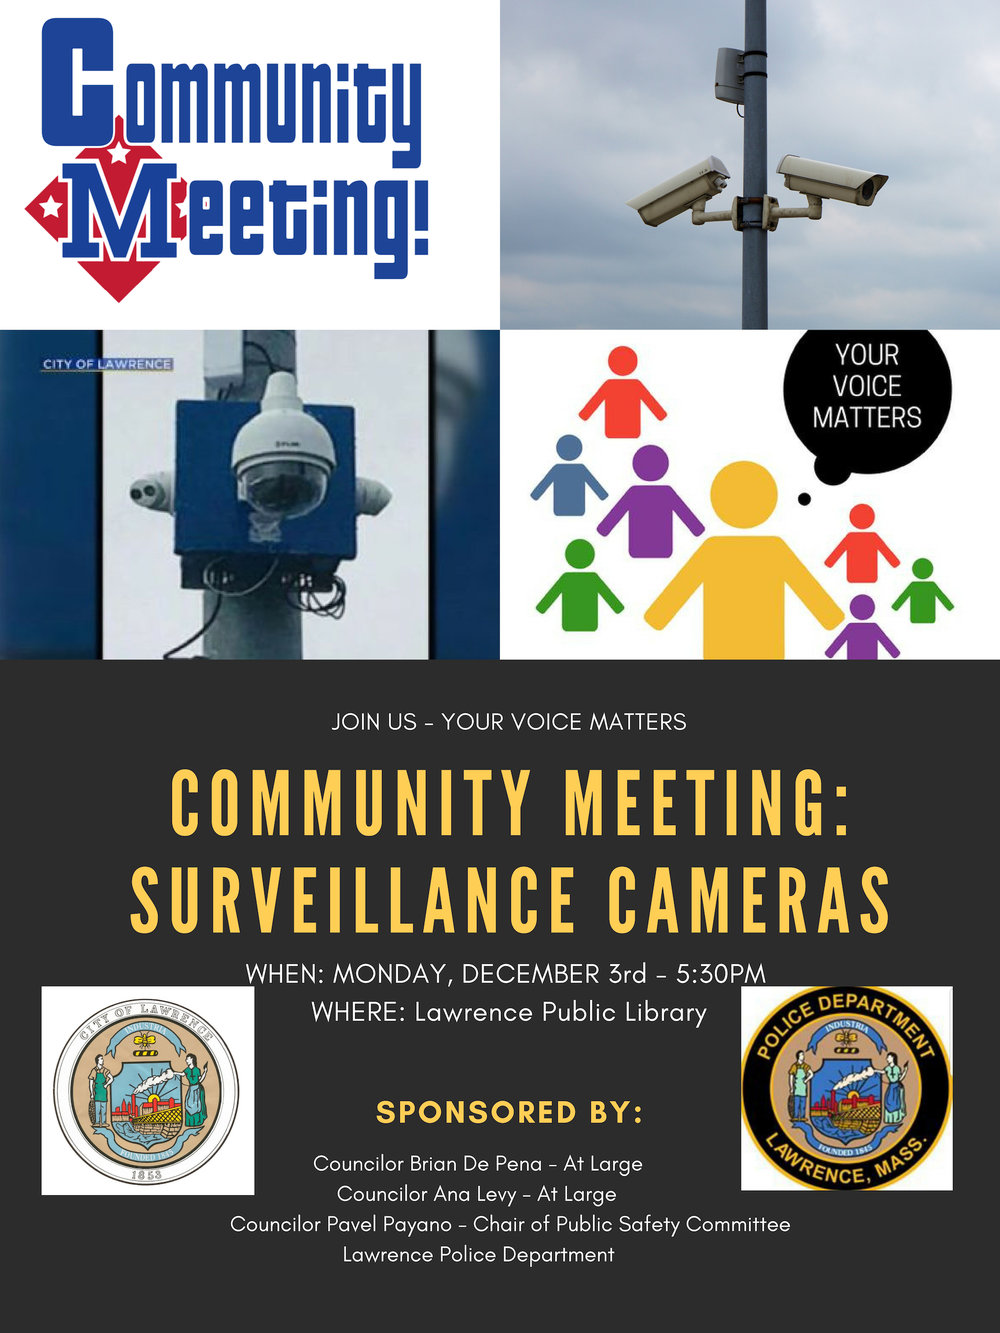 Surveillance Cameras Community Meeting.jpg